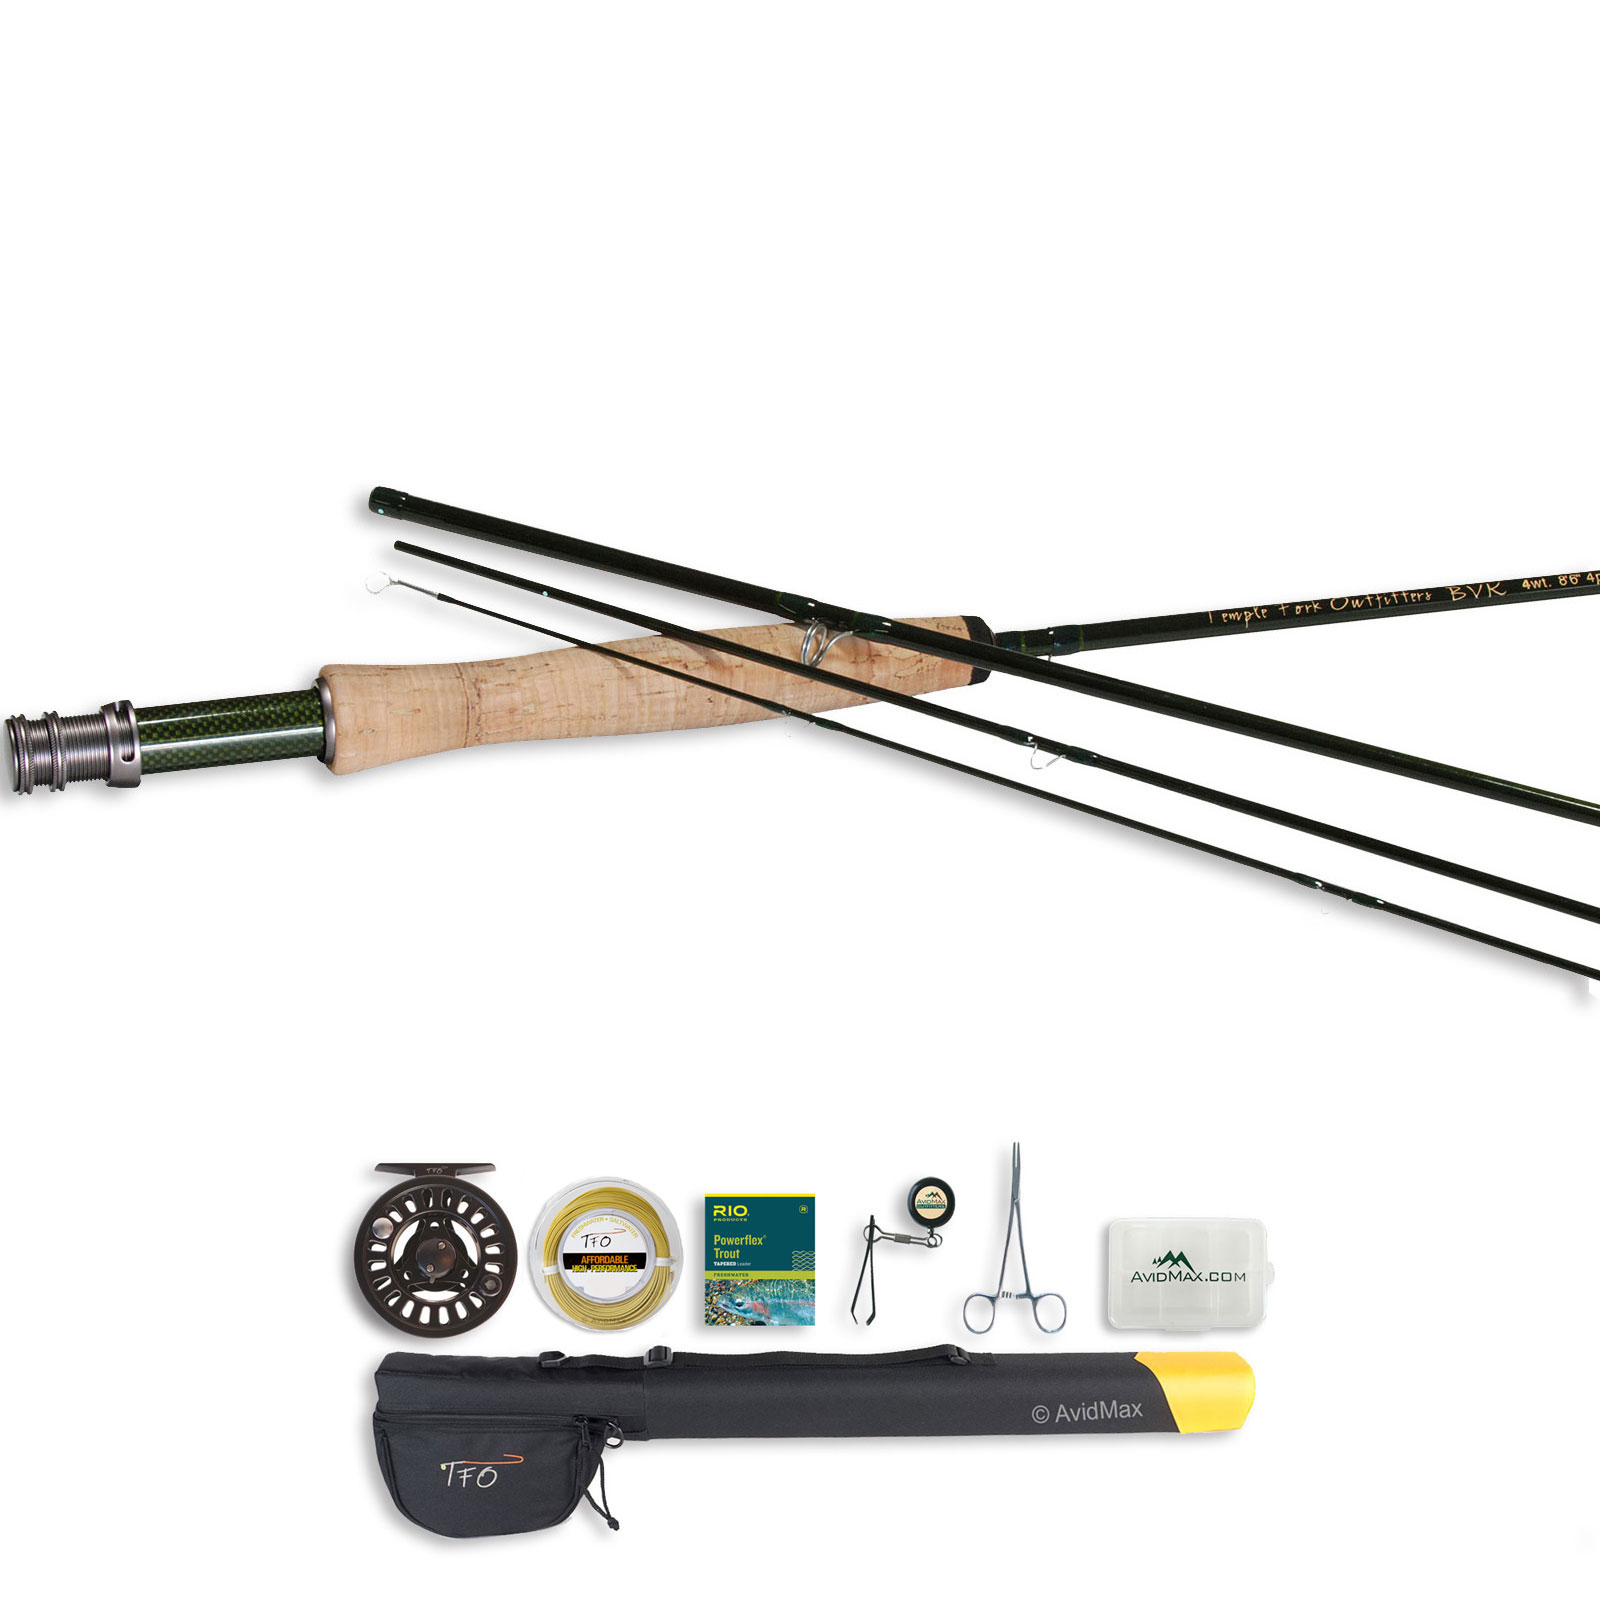 Tfo bvk series 4pc fly rod and prism cast reel outfit with for Trout fishing rod and reel